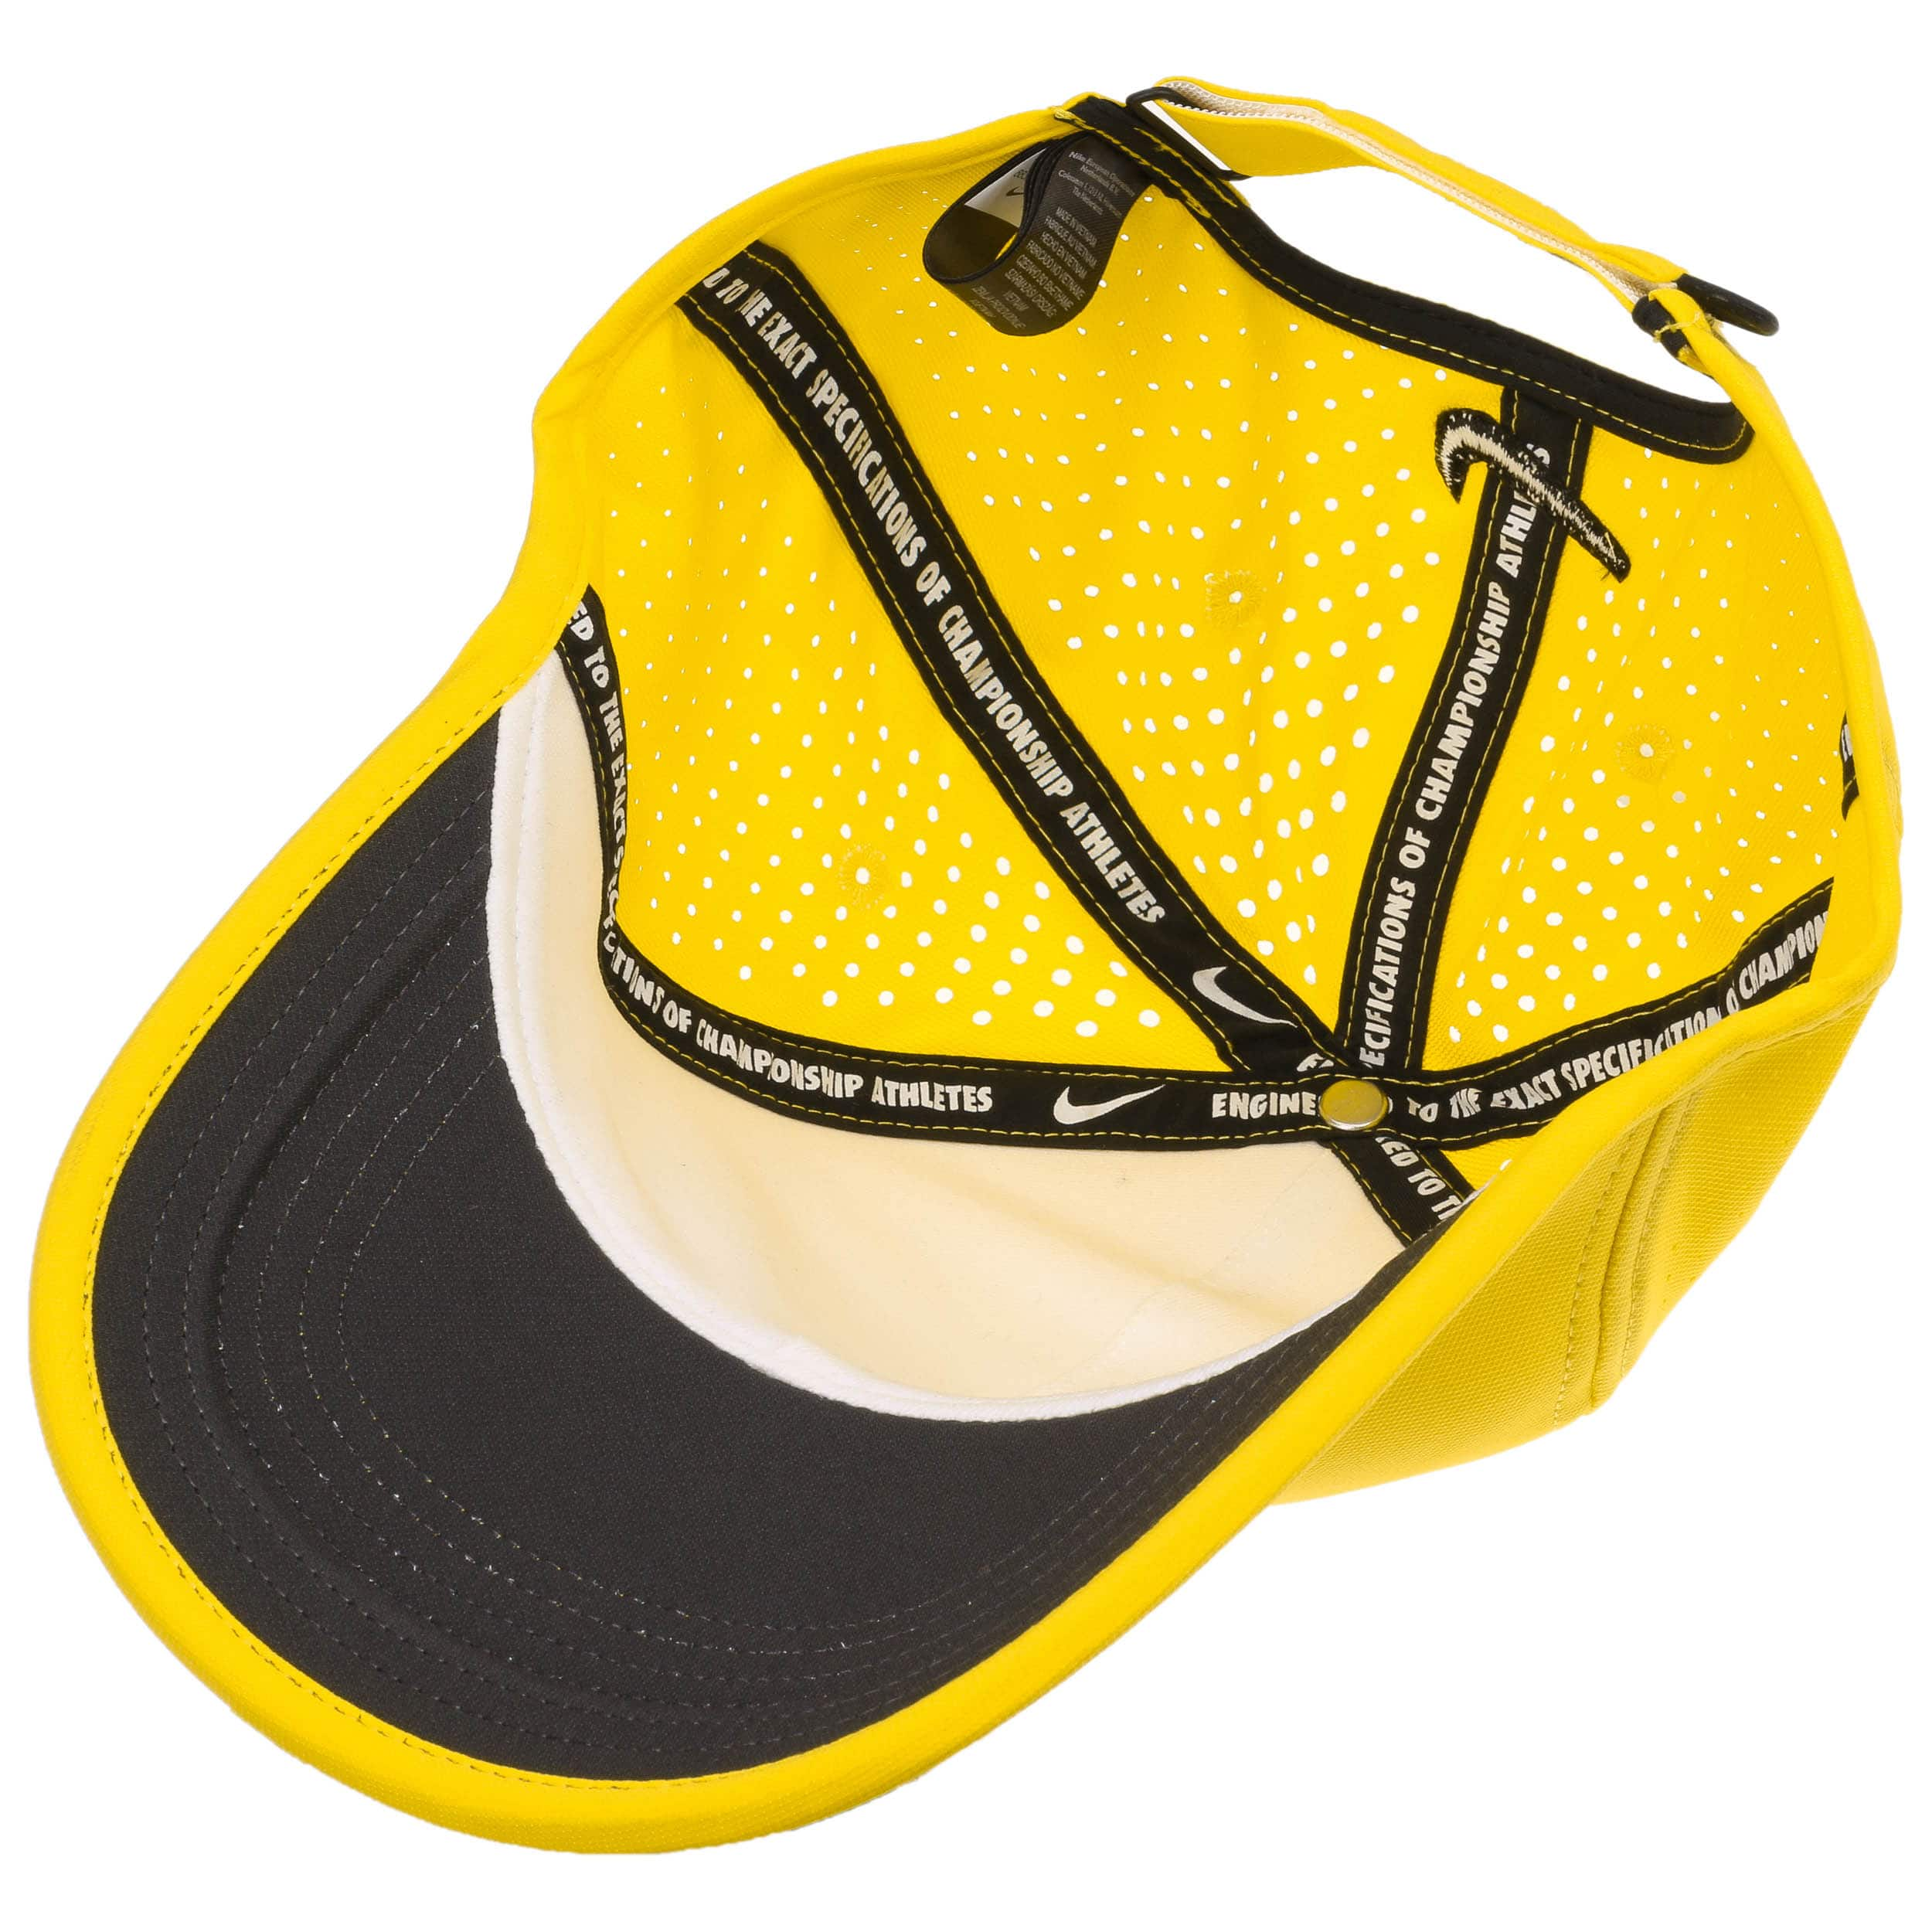 53eb5d54fde ... Ultralight Tour Perforation Cap by Nike - yellow 2 ...